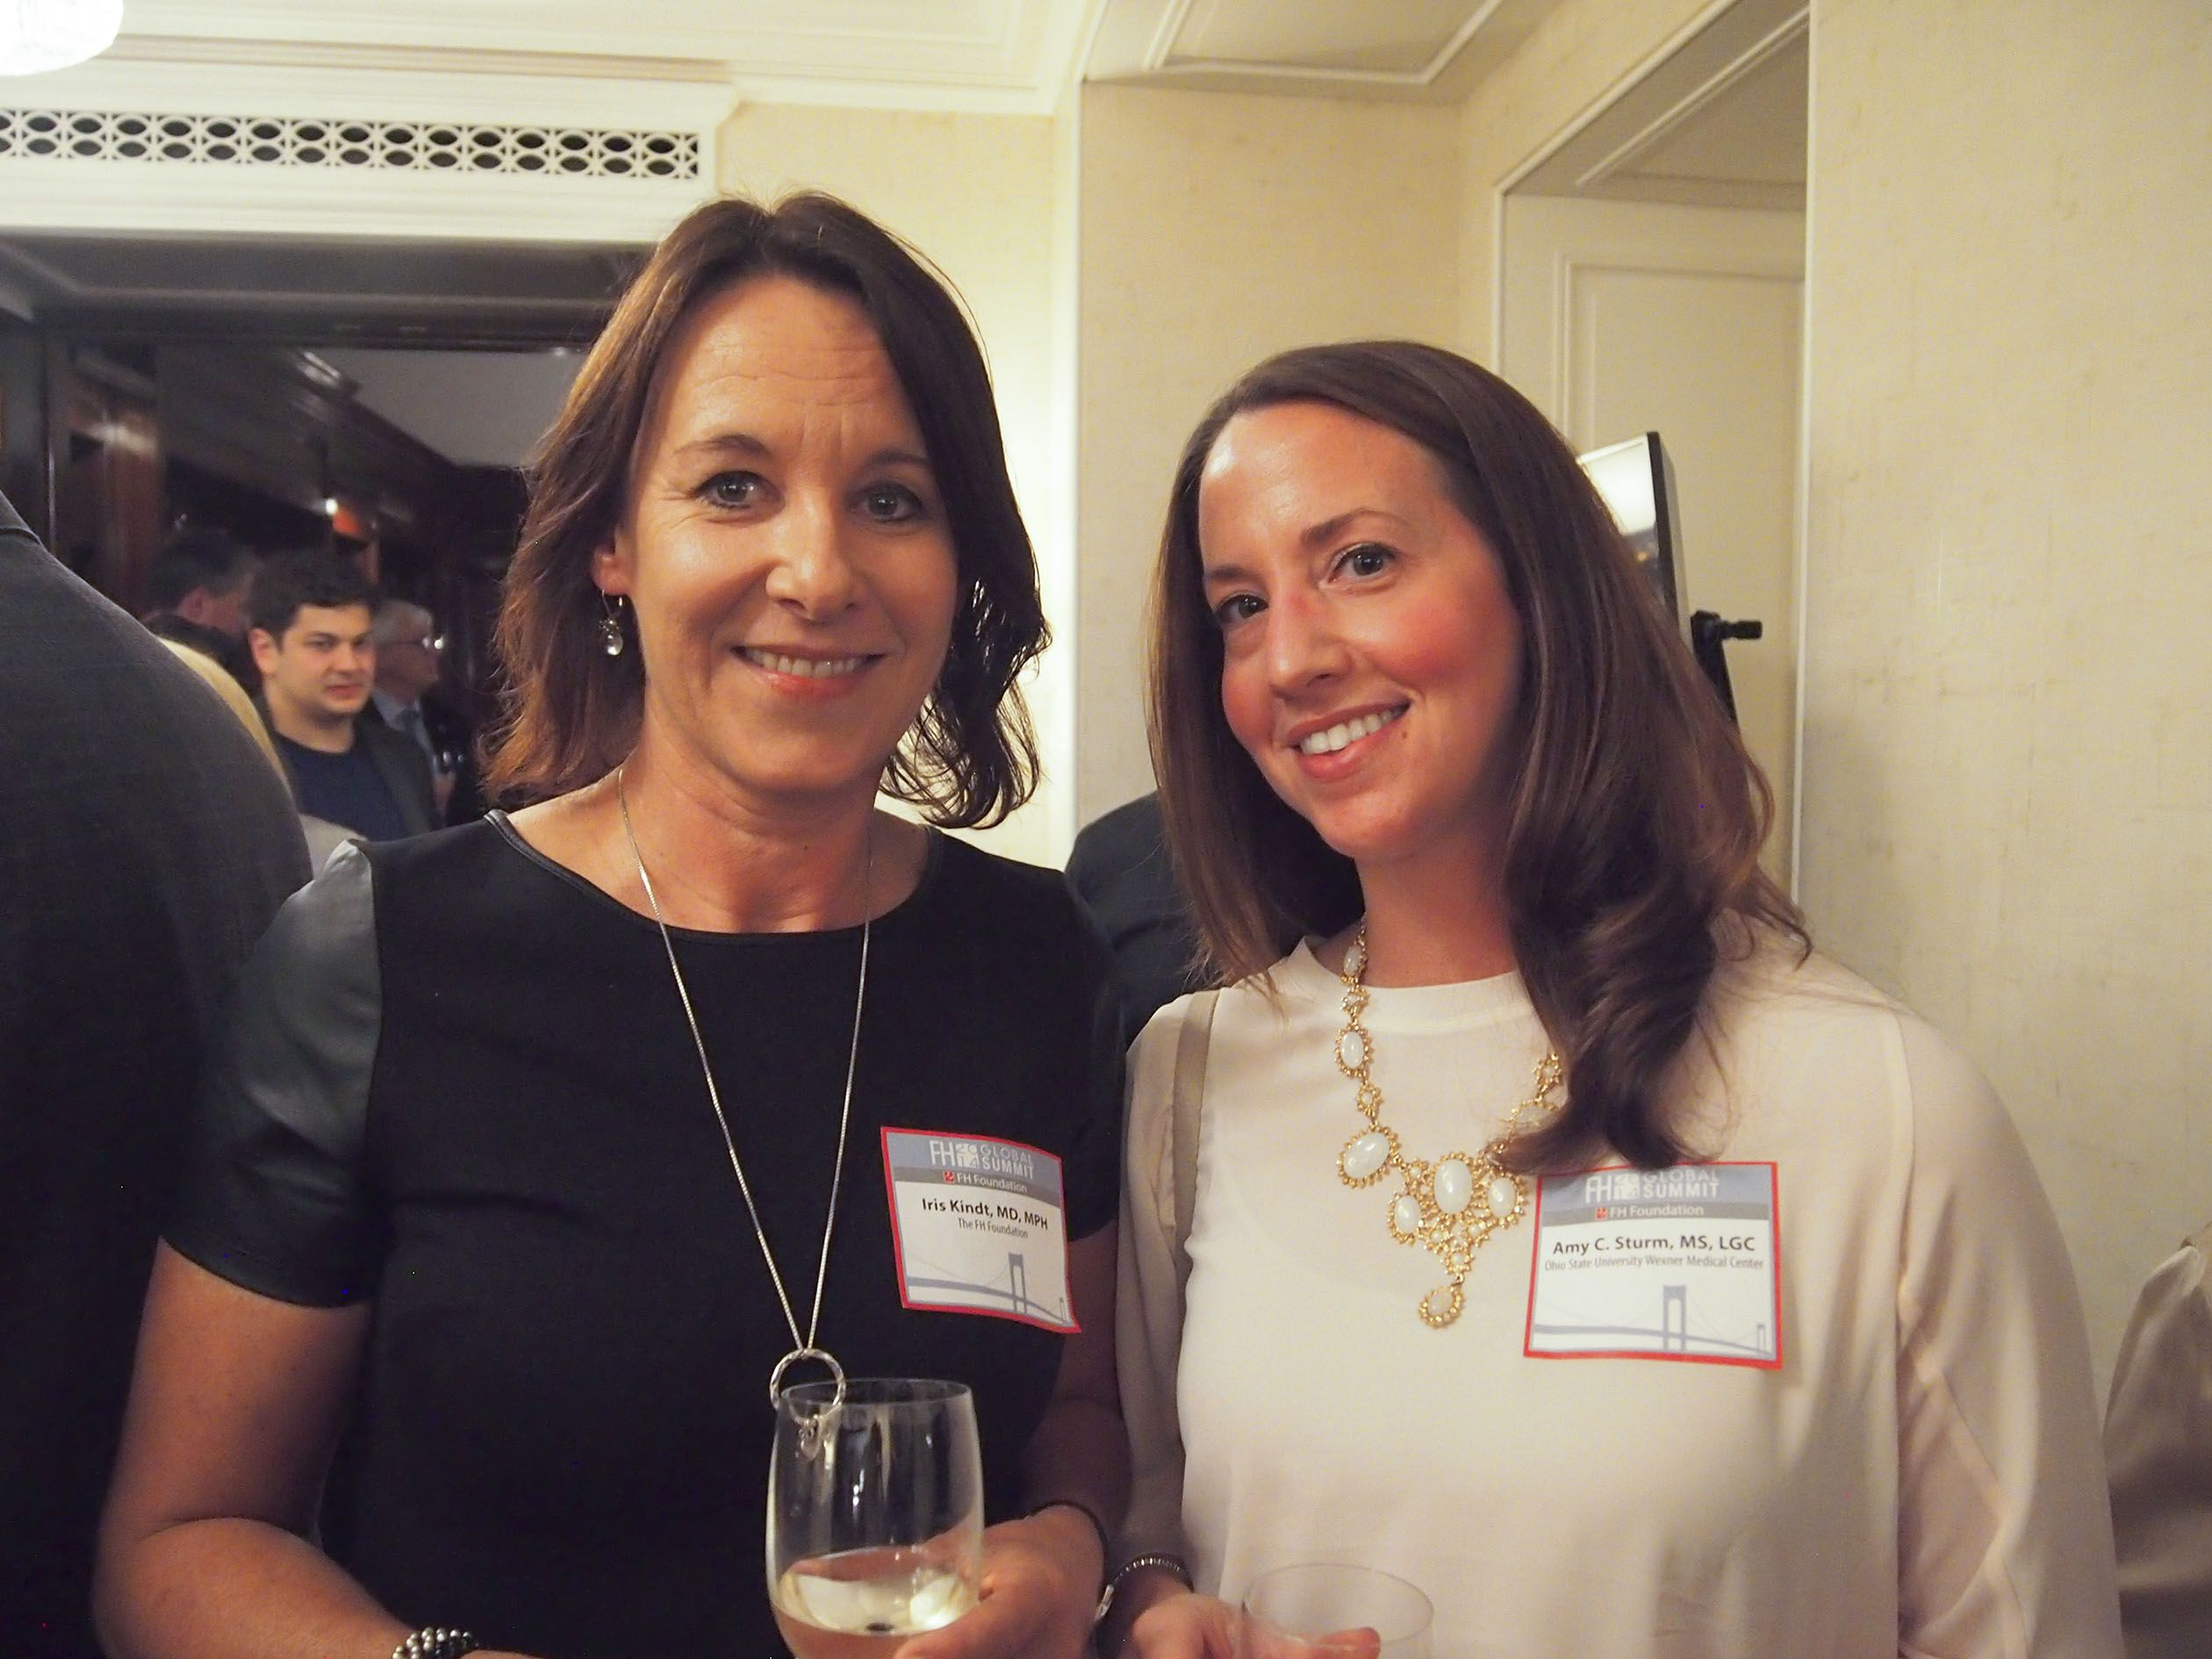 Iris Kindt Md Mph And Amy Sturm Ms Lgc At The 2014 Familial